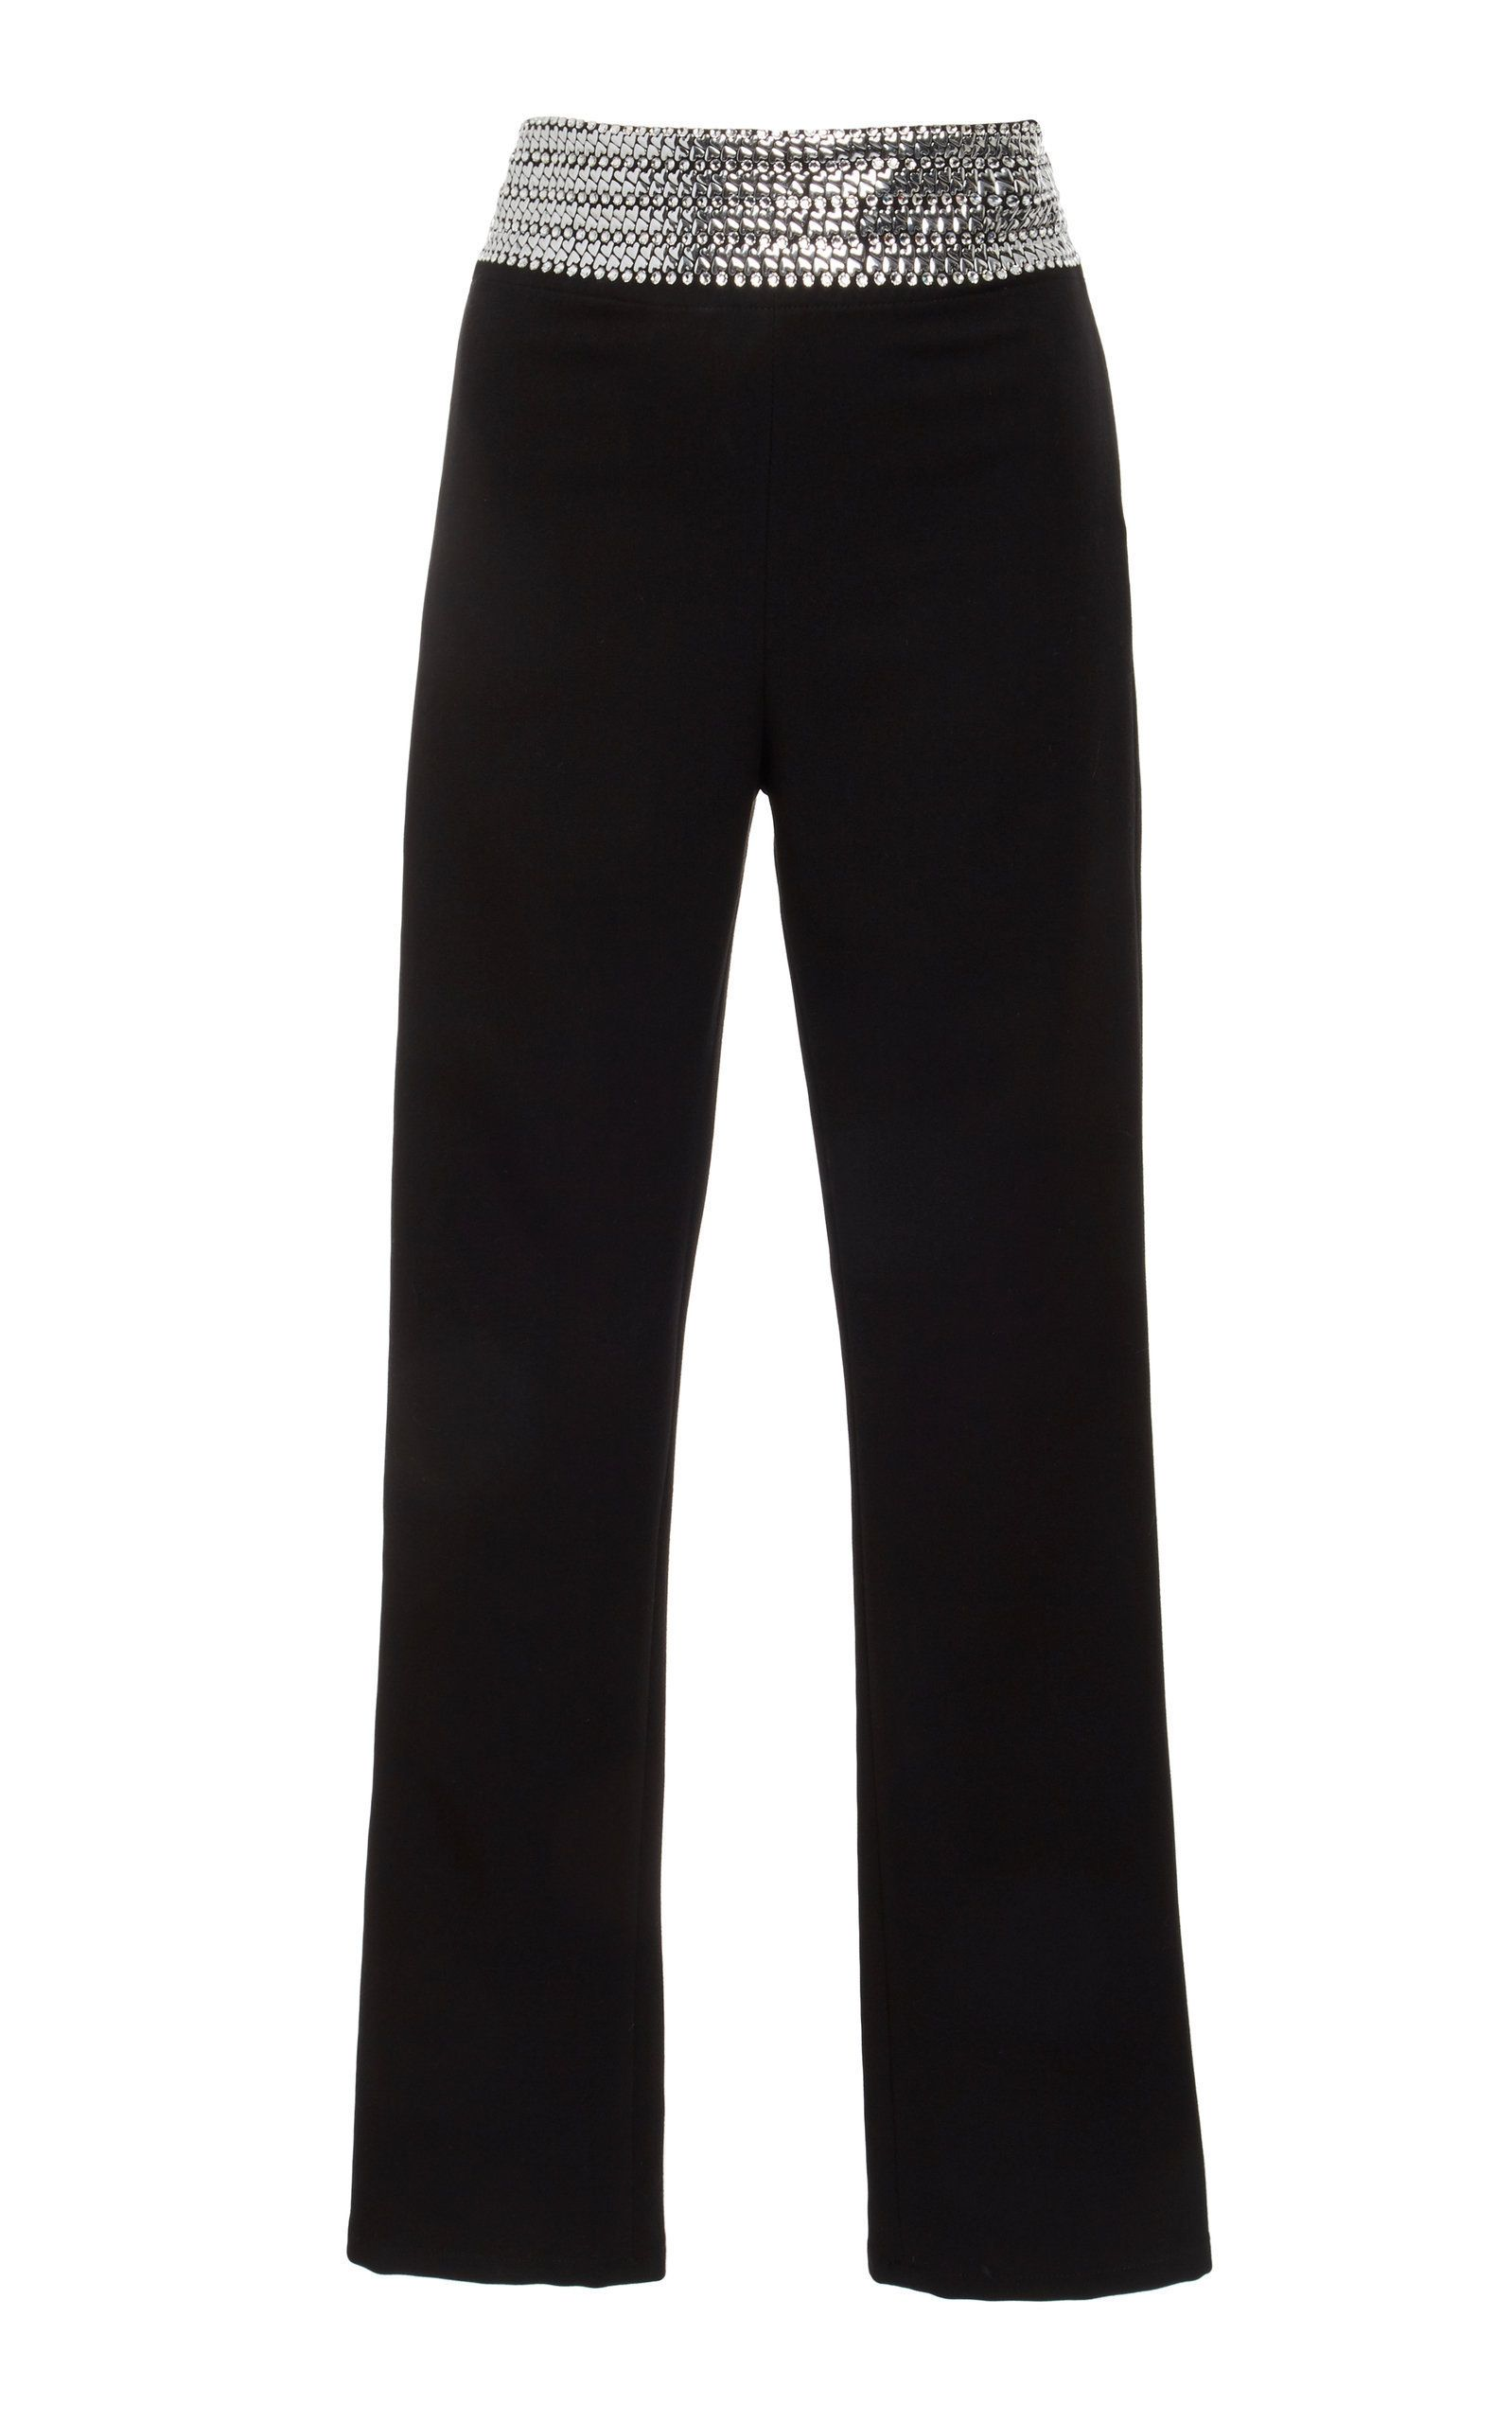 Sandy Pant With Hearts In Black Pants, Clothes, Pantsuit